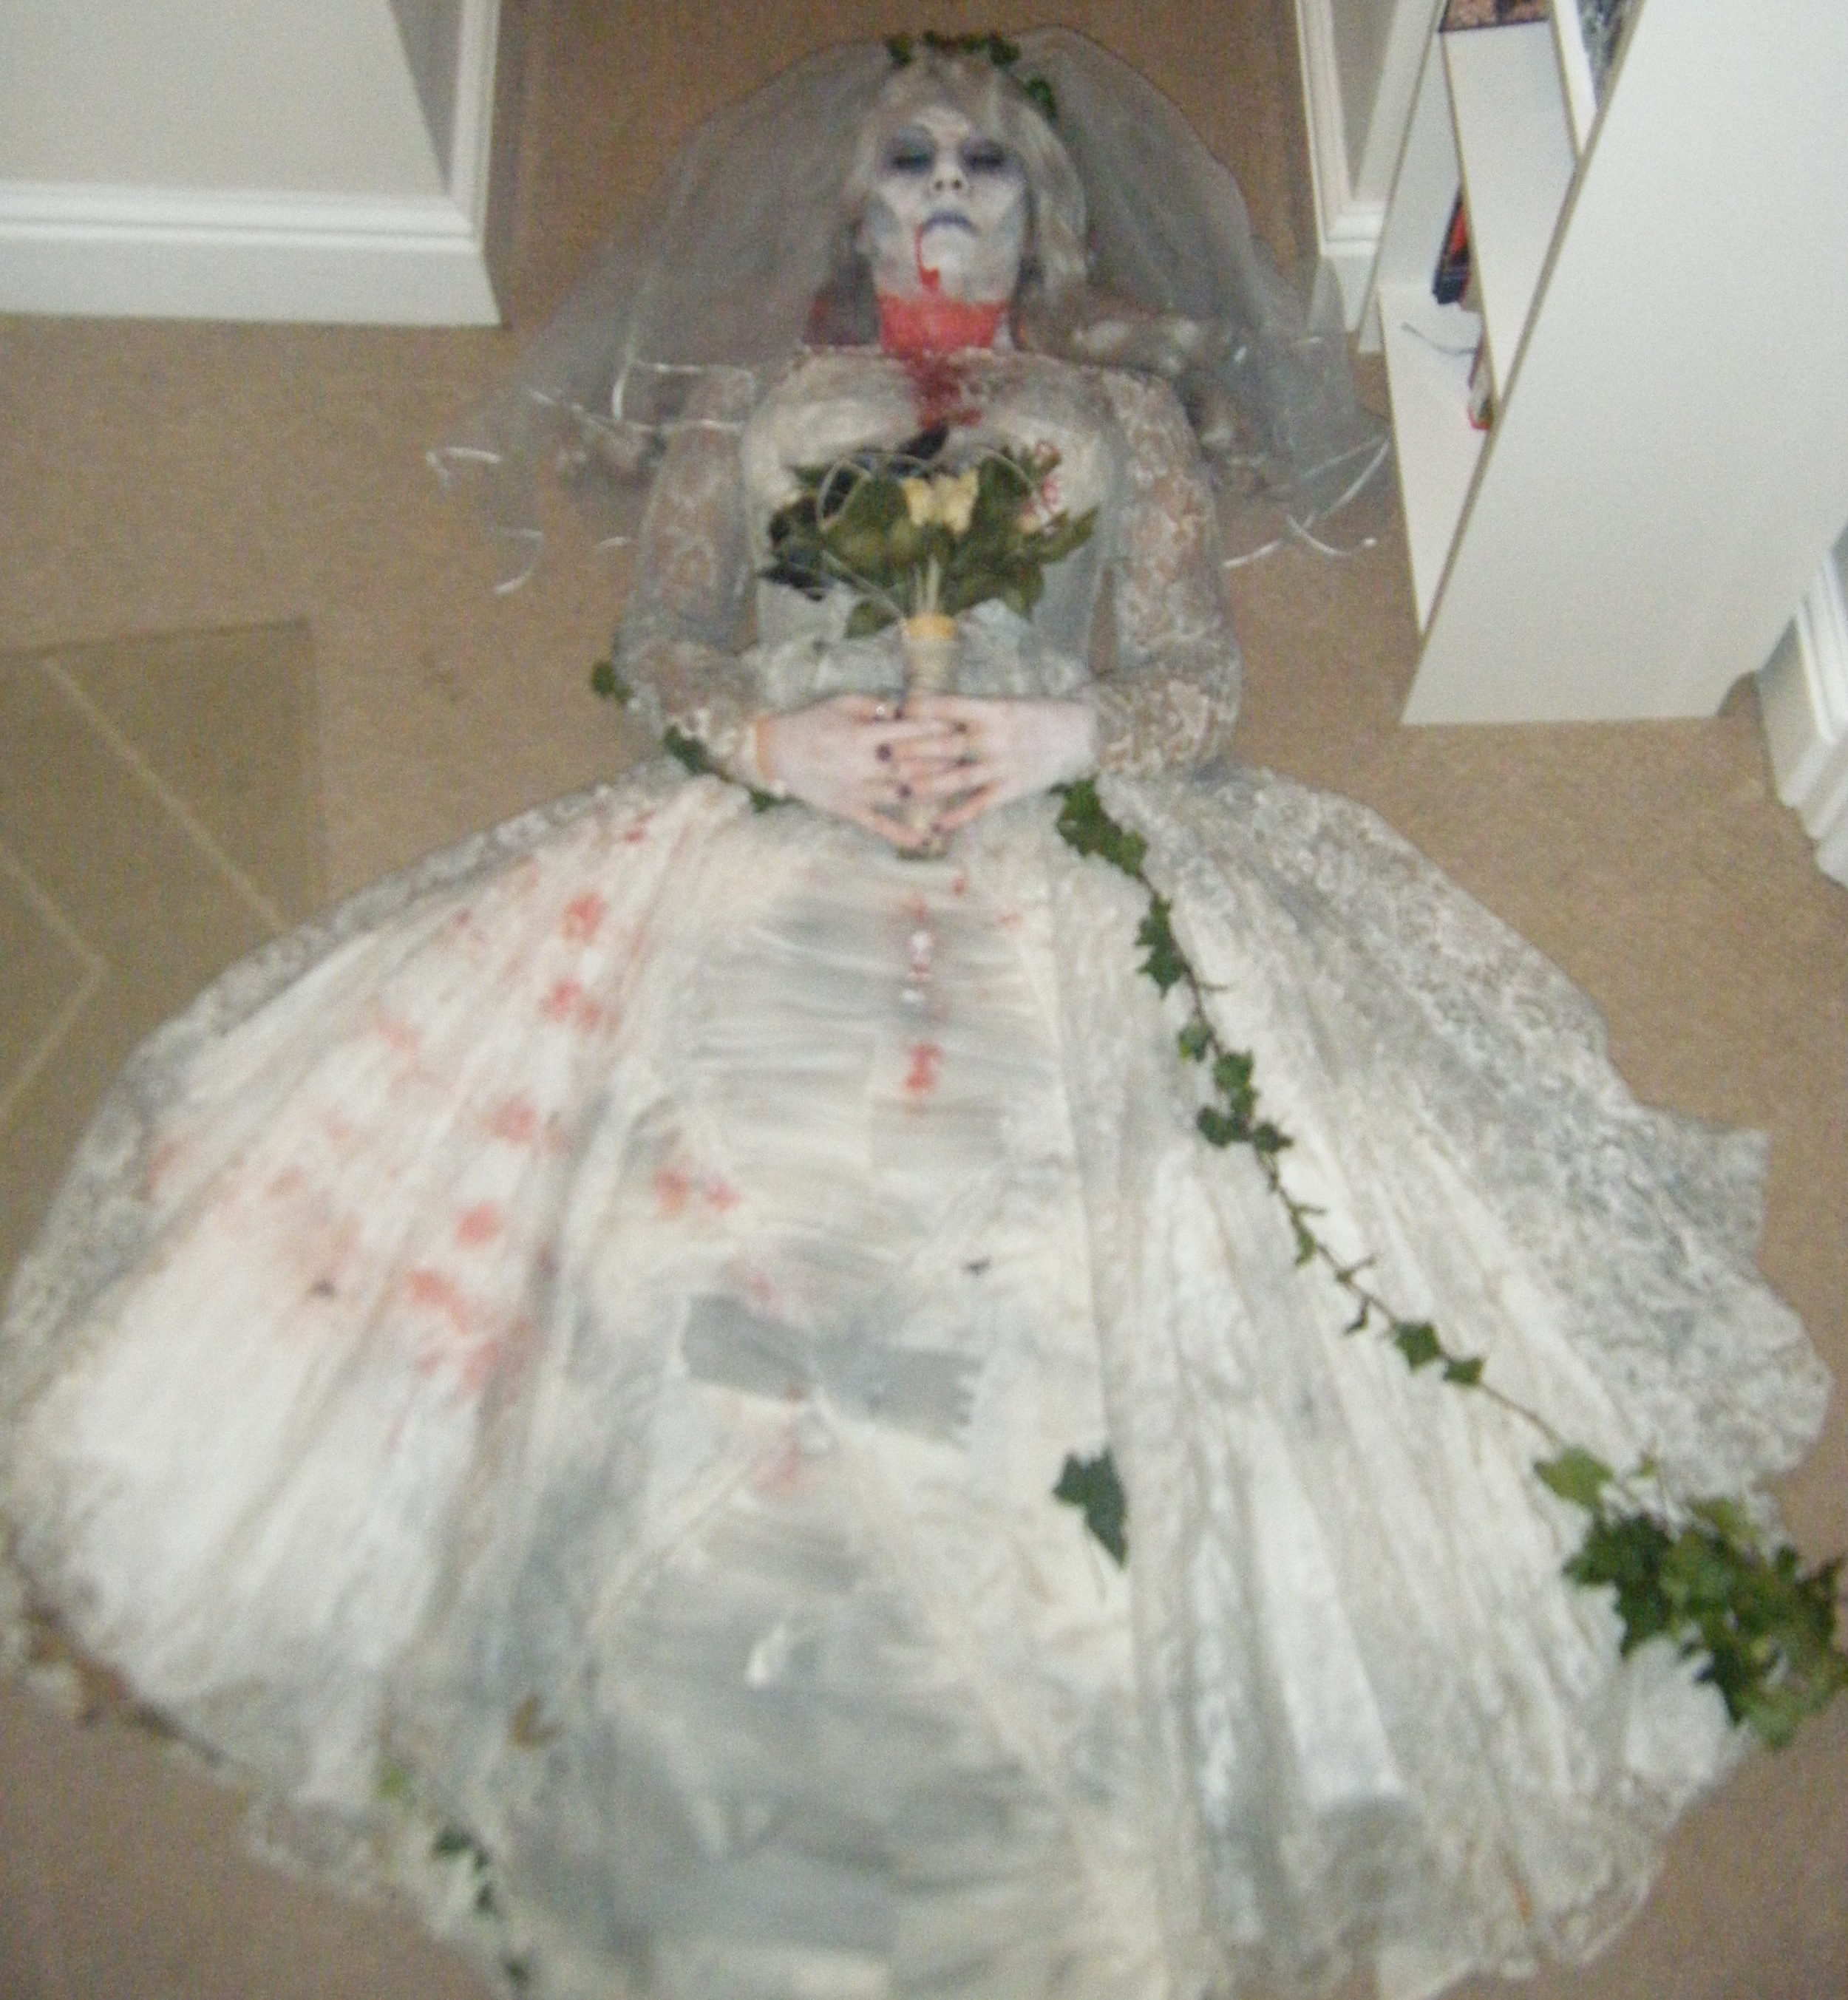 Corpse-bride special effects make-up & costume for Halloween